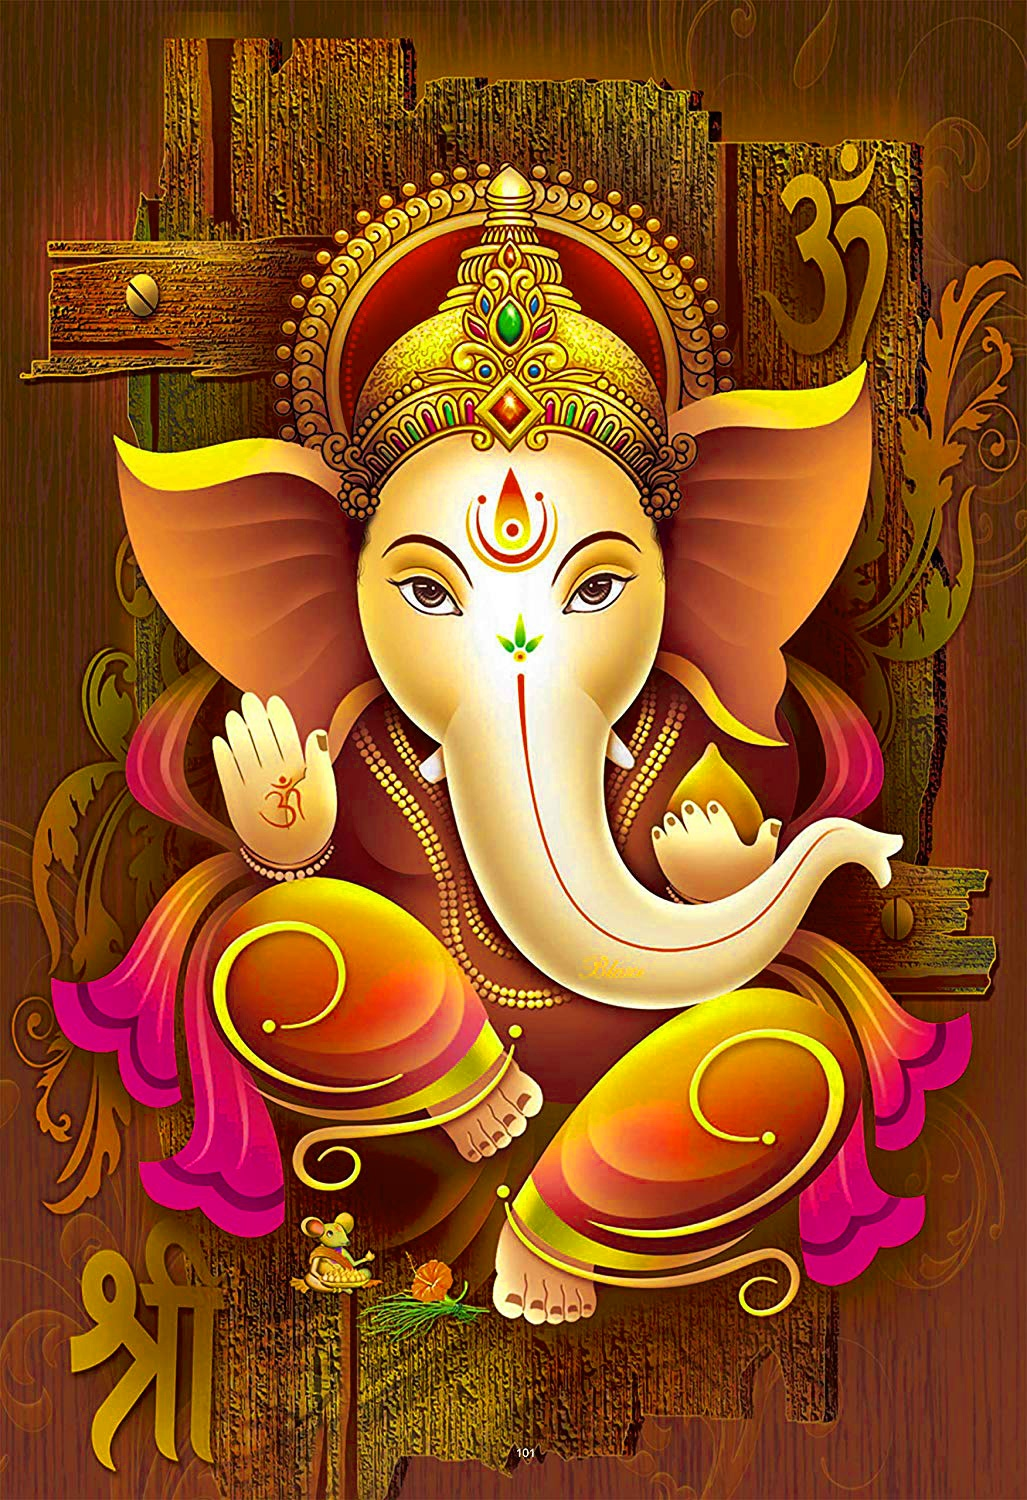 Lord Ganesha Images Wallpaper for Facebook